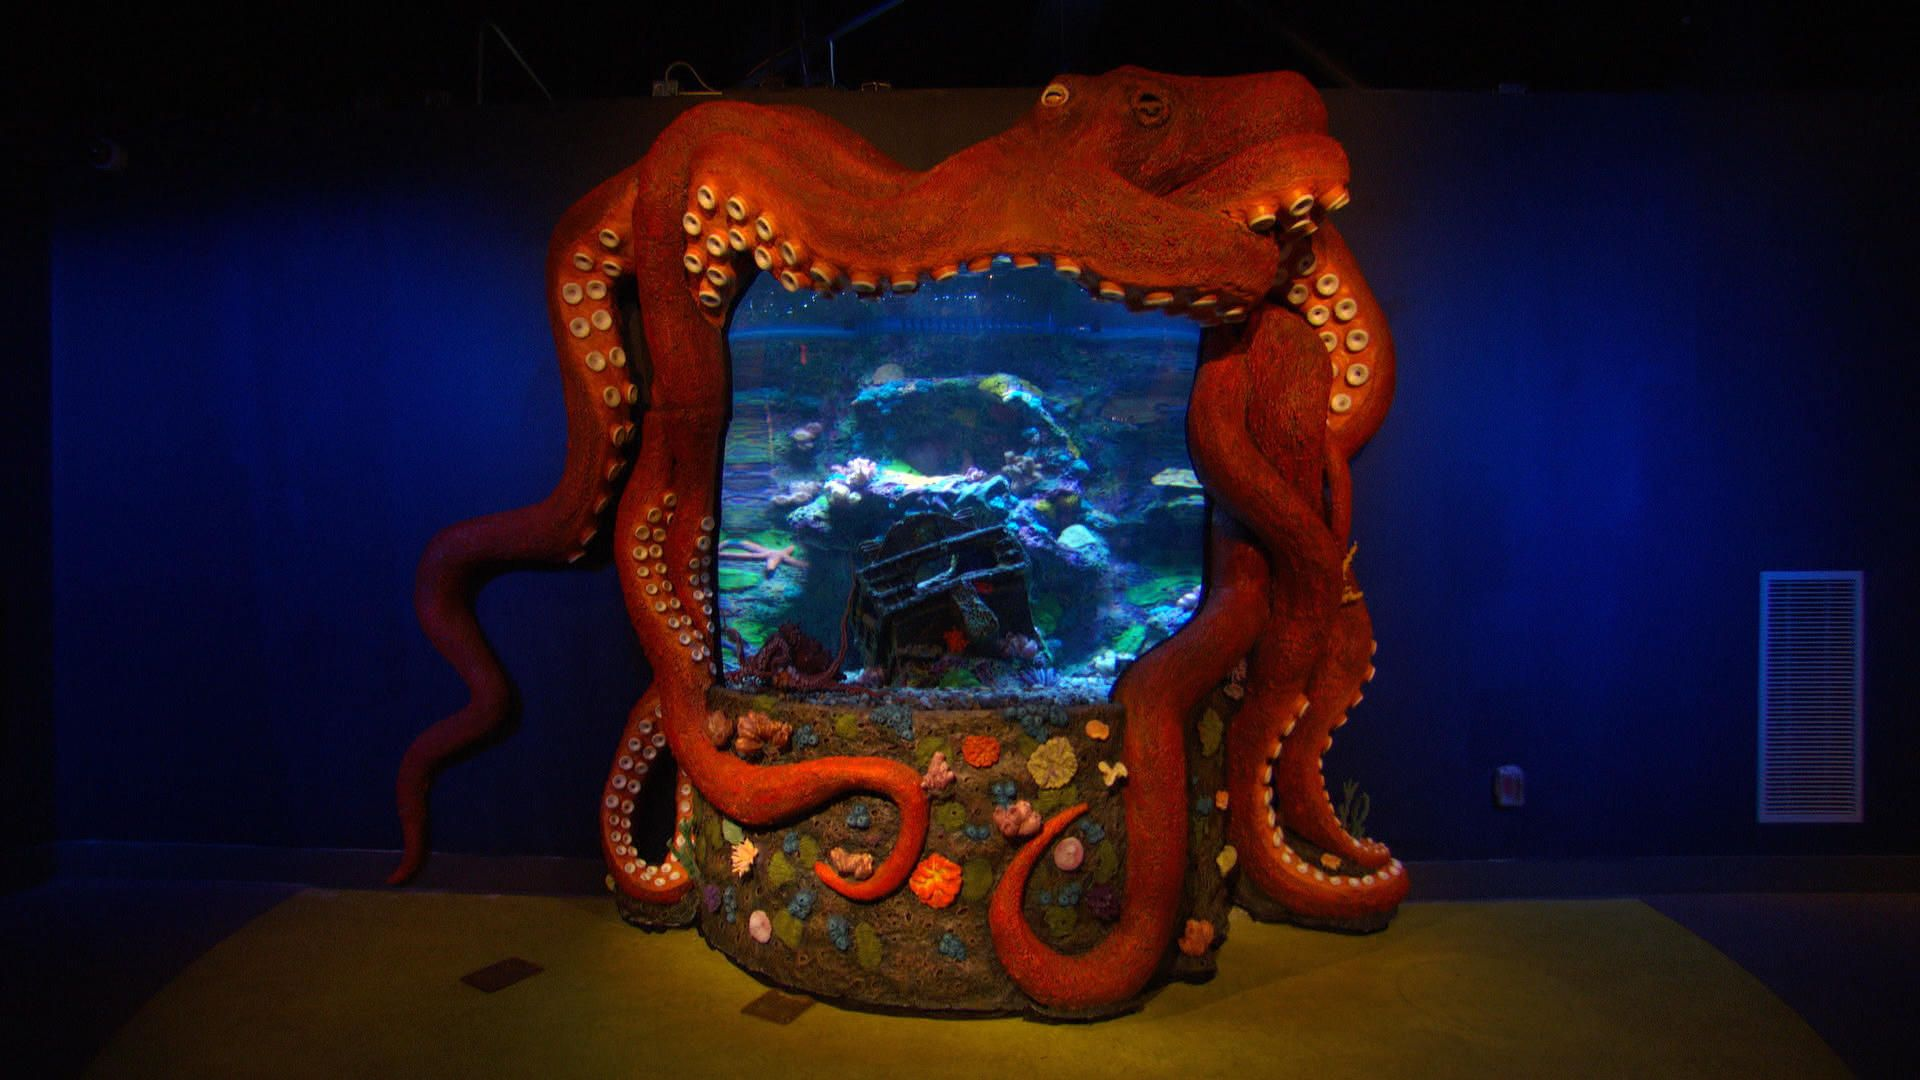 Check out this amazing octopus tank, made just for the Greensboro Science Center!